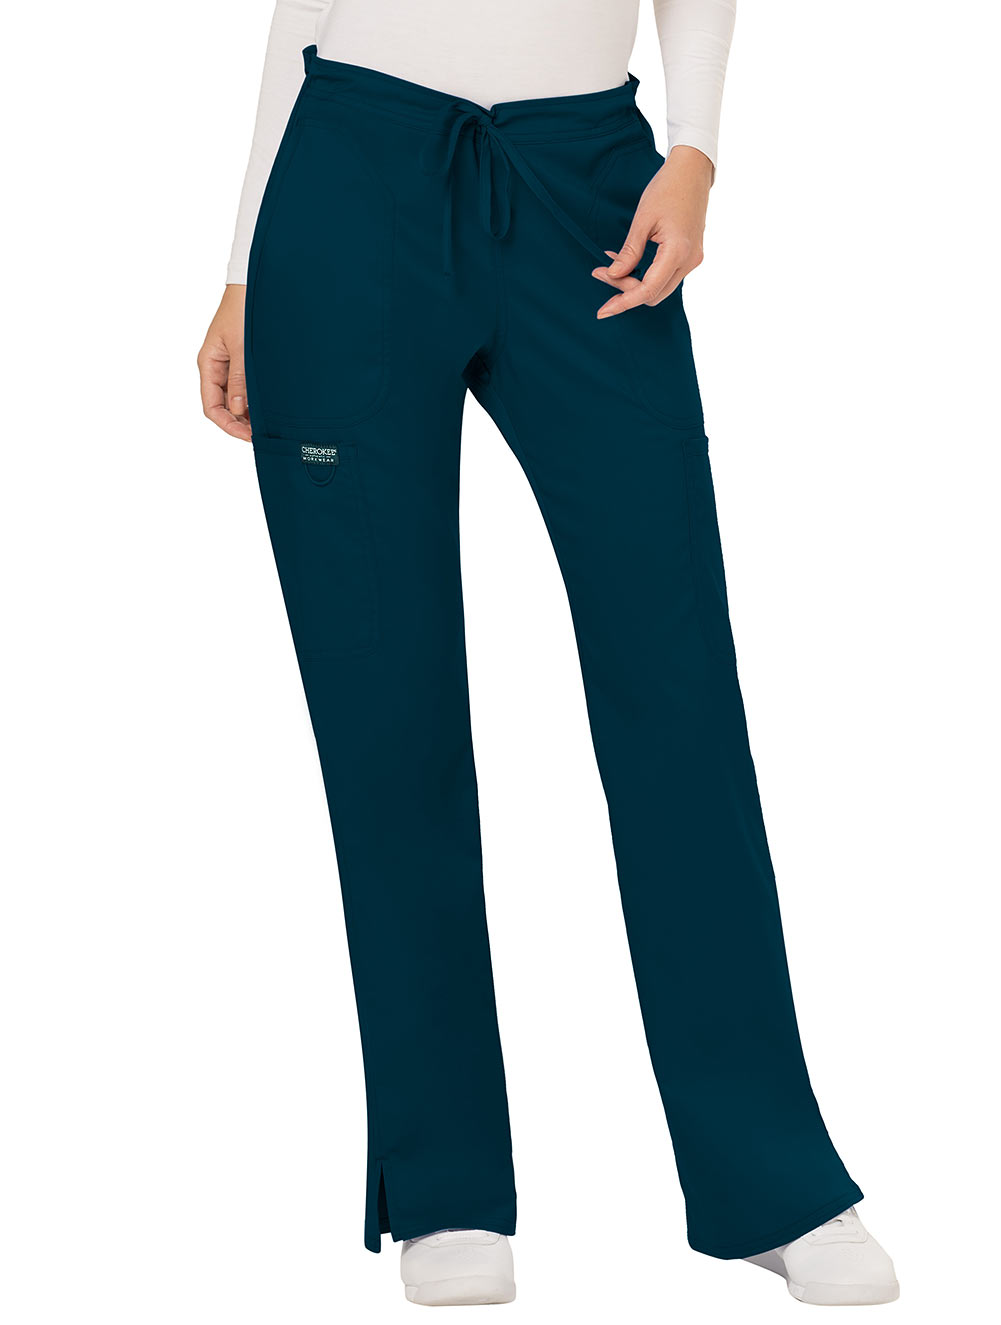 Mid-Rise Moderate Flare Drawstring Pant